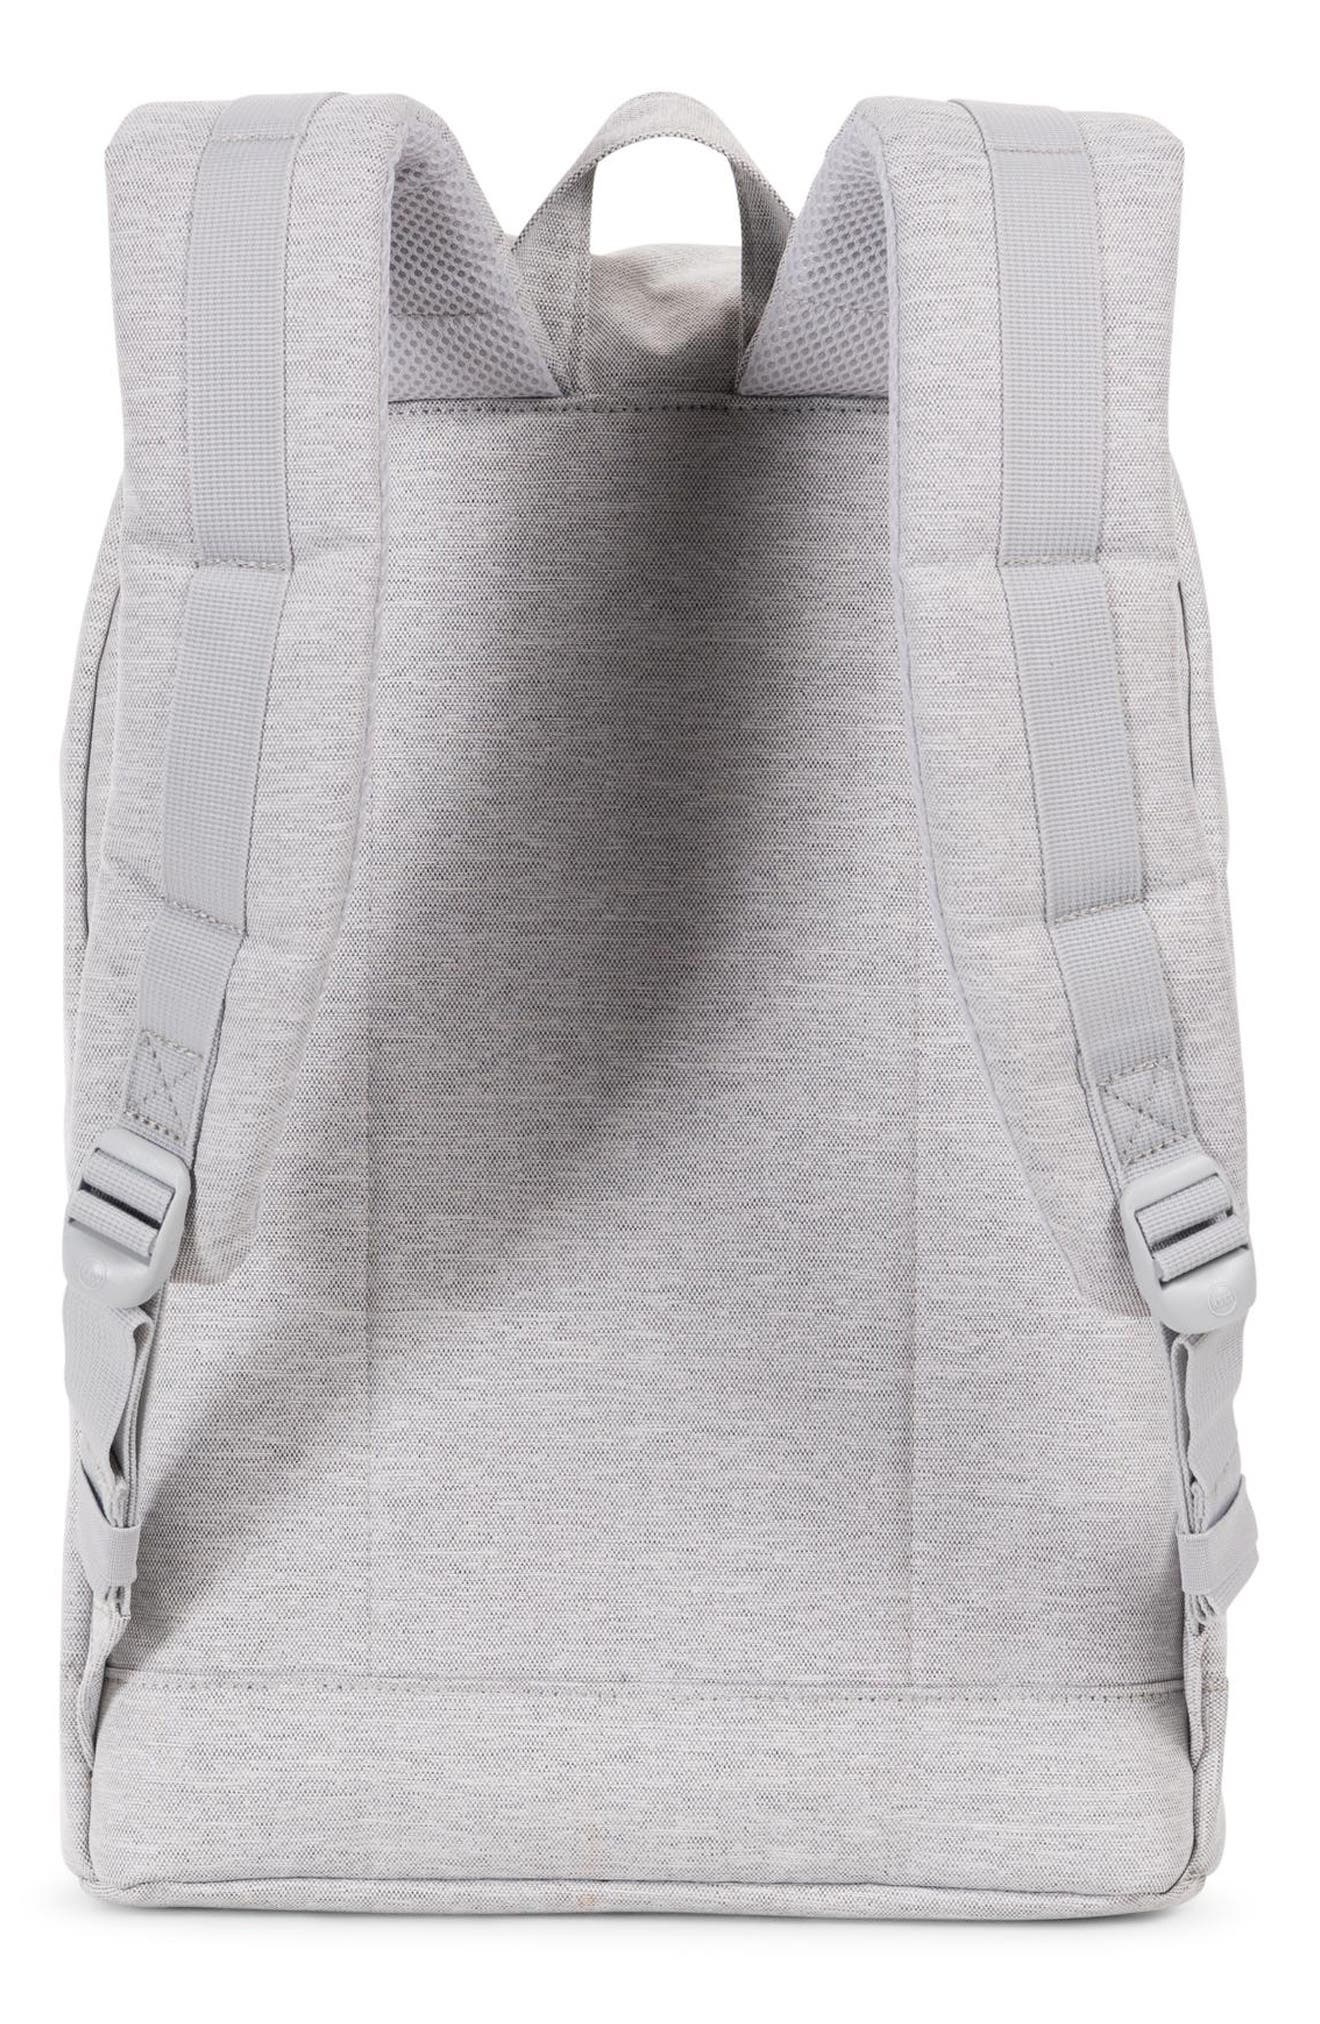 Retreat Backpack,                             Alternate thumbnail 2, color,                             LIGHT GREY CROSSHATCH/ GREY